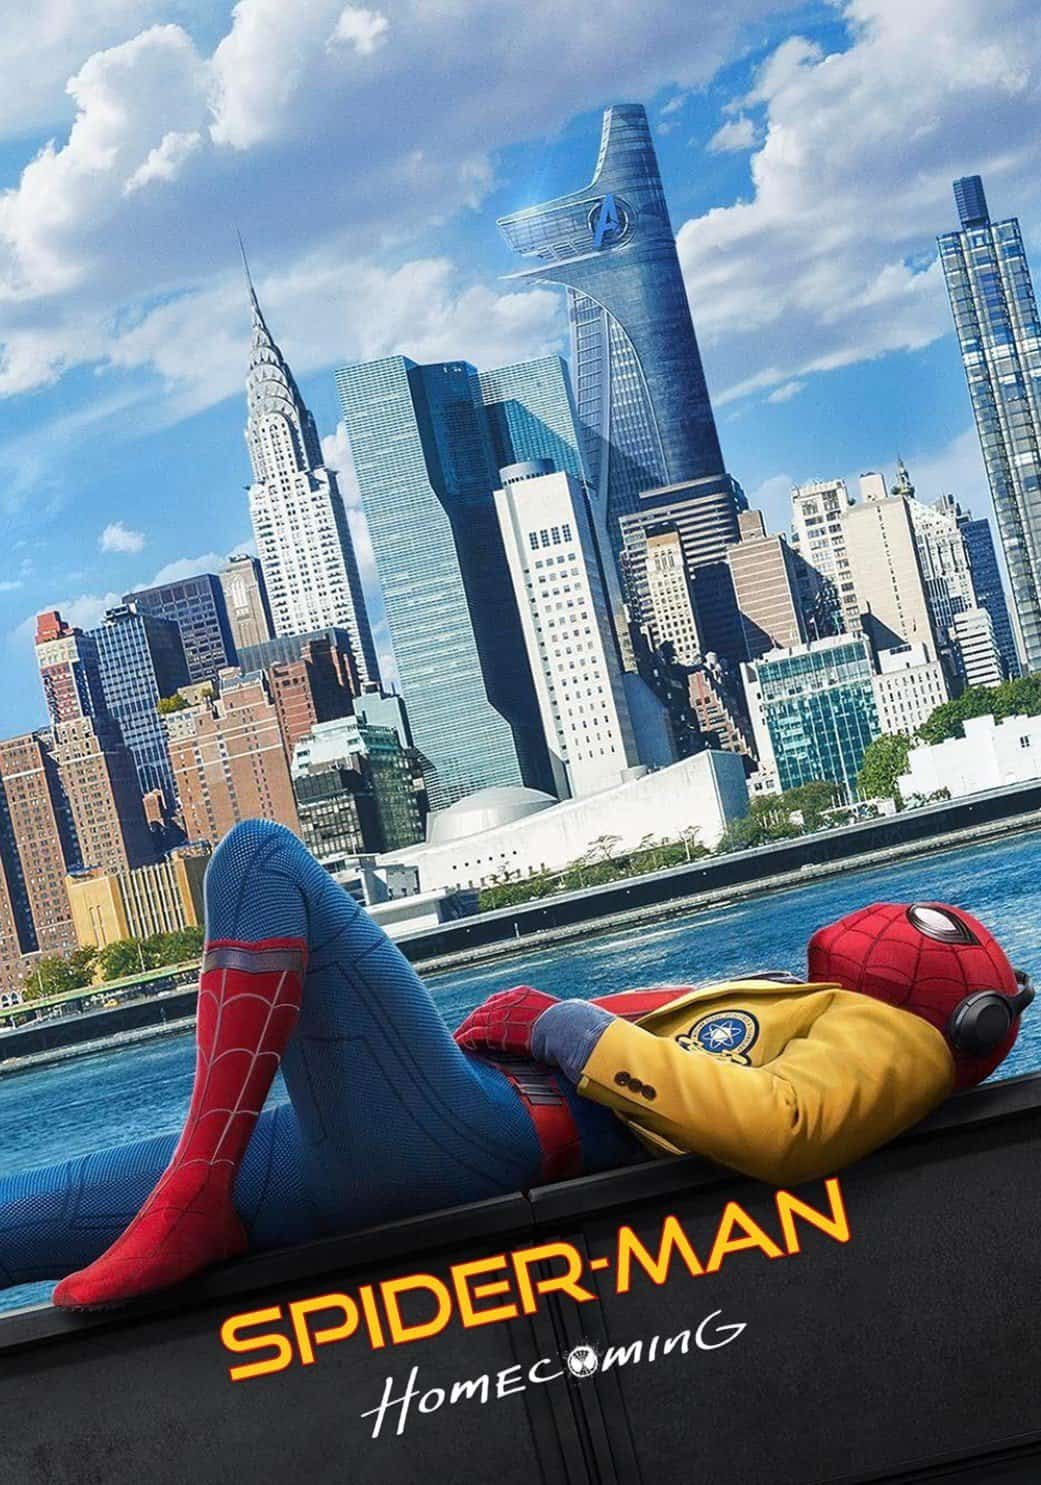 Spider-Man: Homecoming, 2017